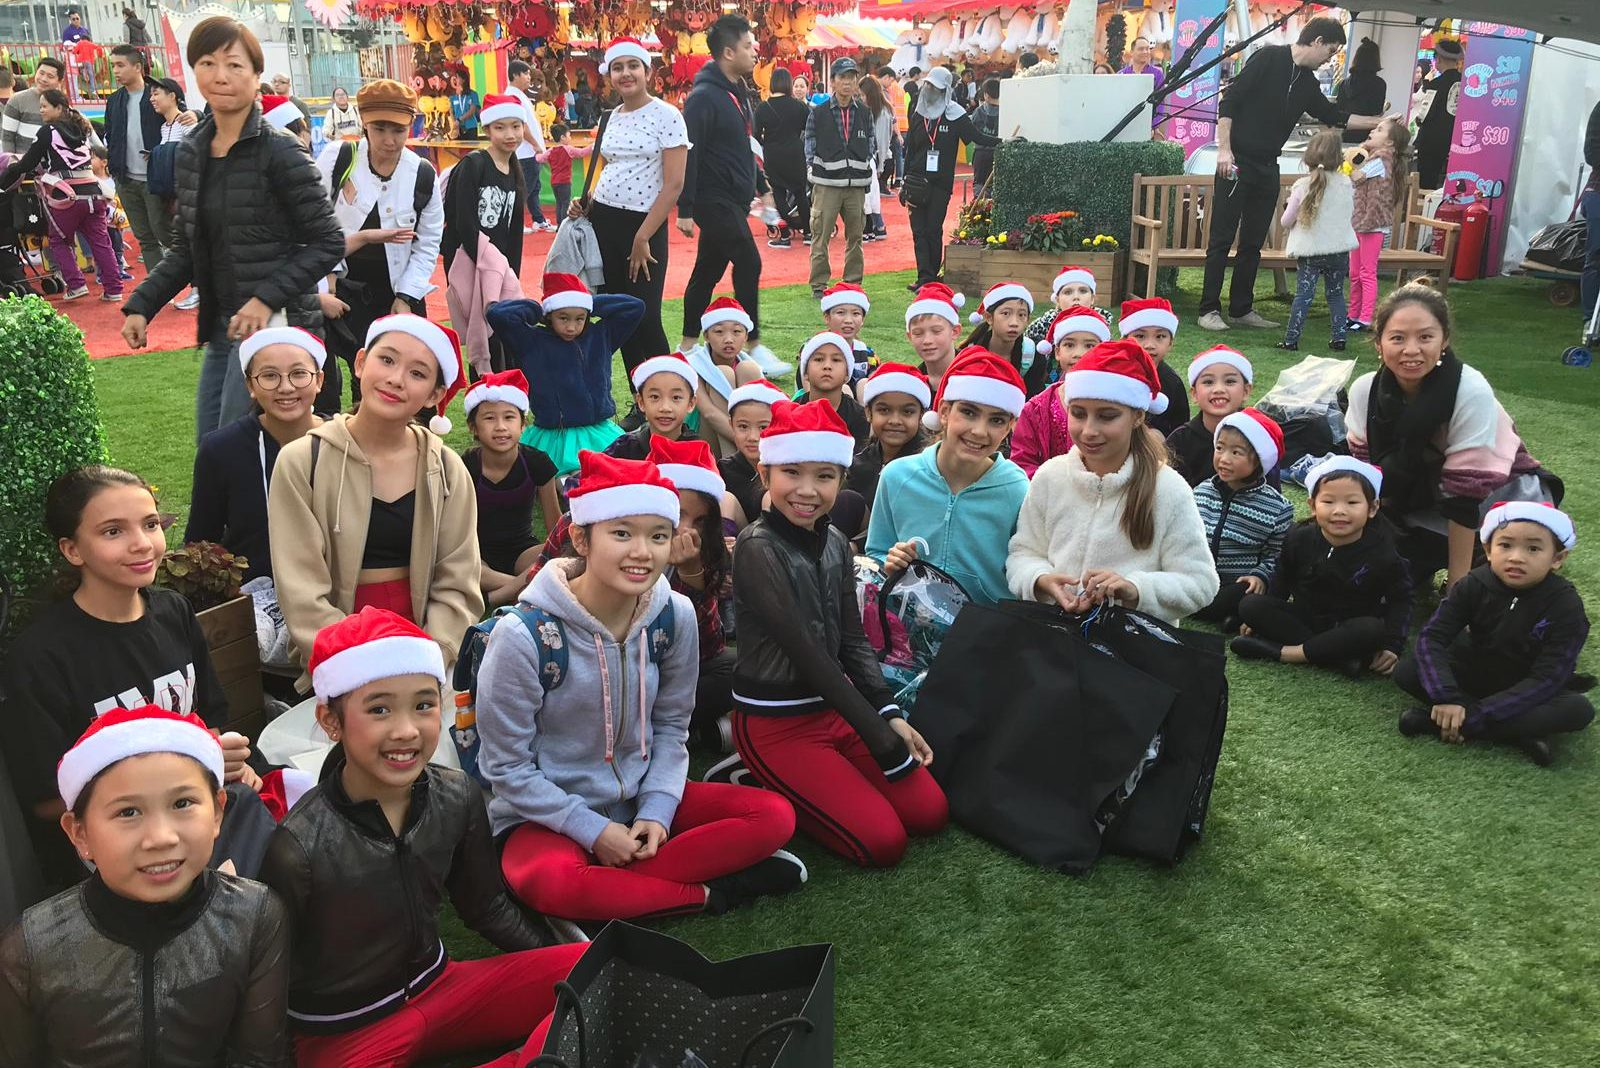 Academy of Dance - AIA Carnival Group Photo